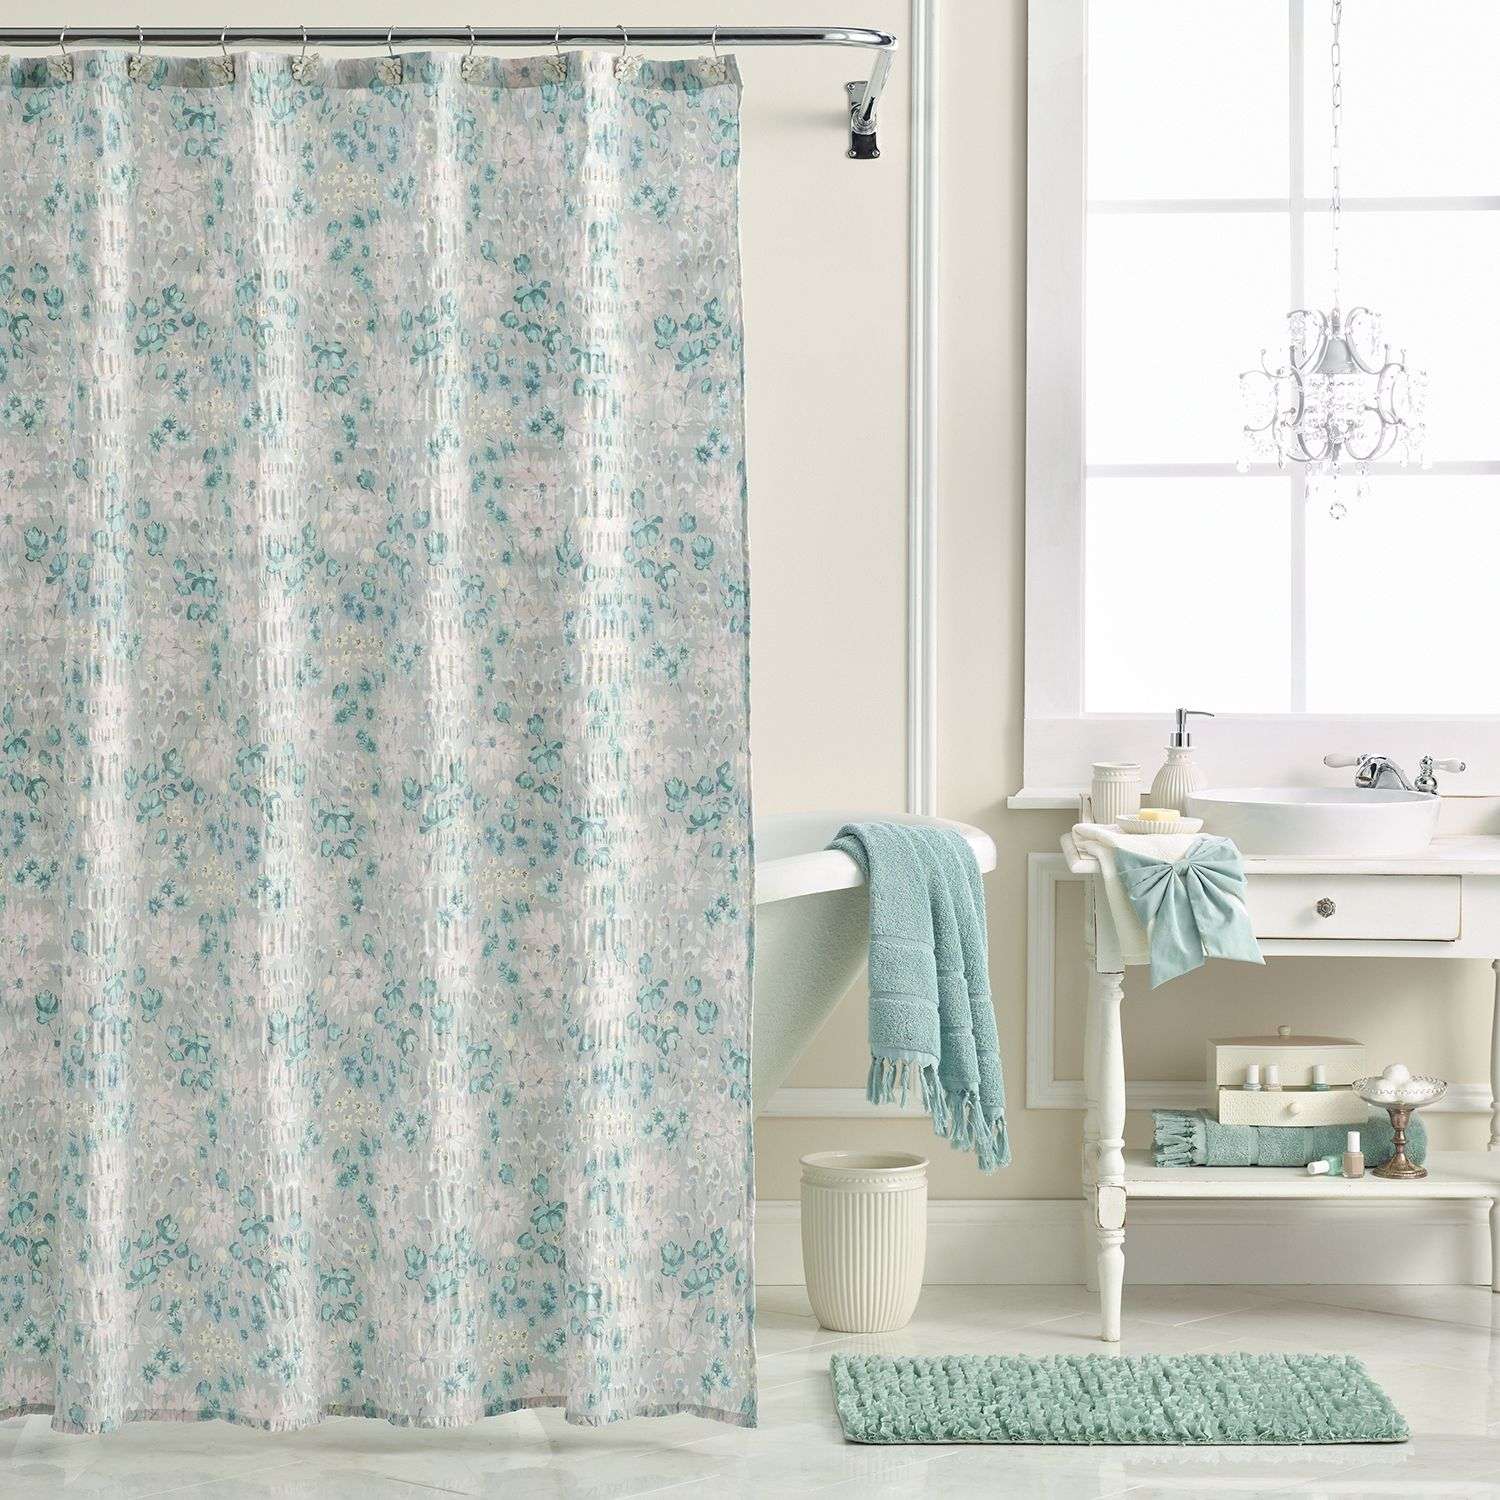 Shower Curtains Shower Curtains & Accessories - Bathroom, Bed ...